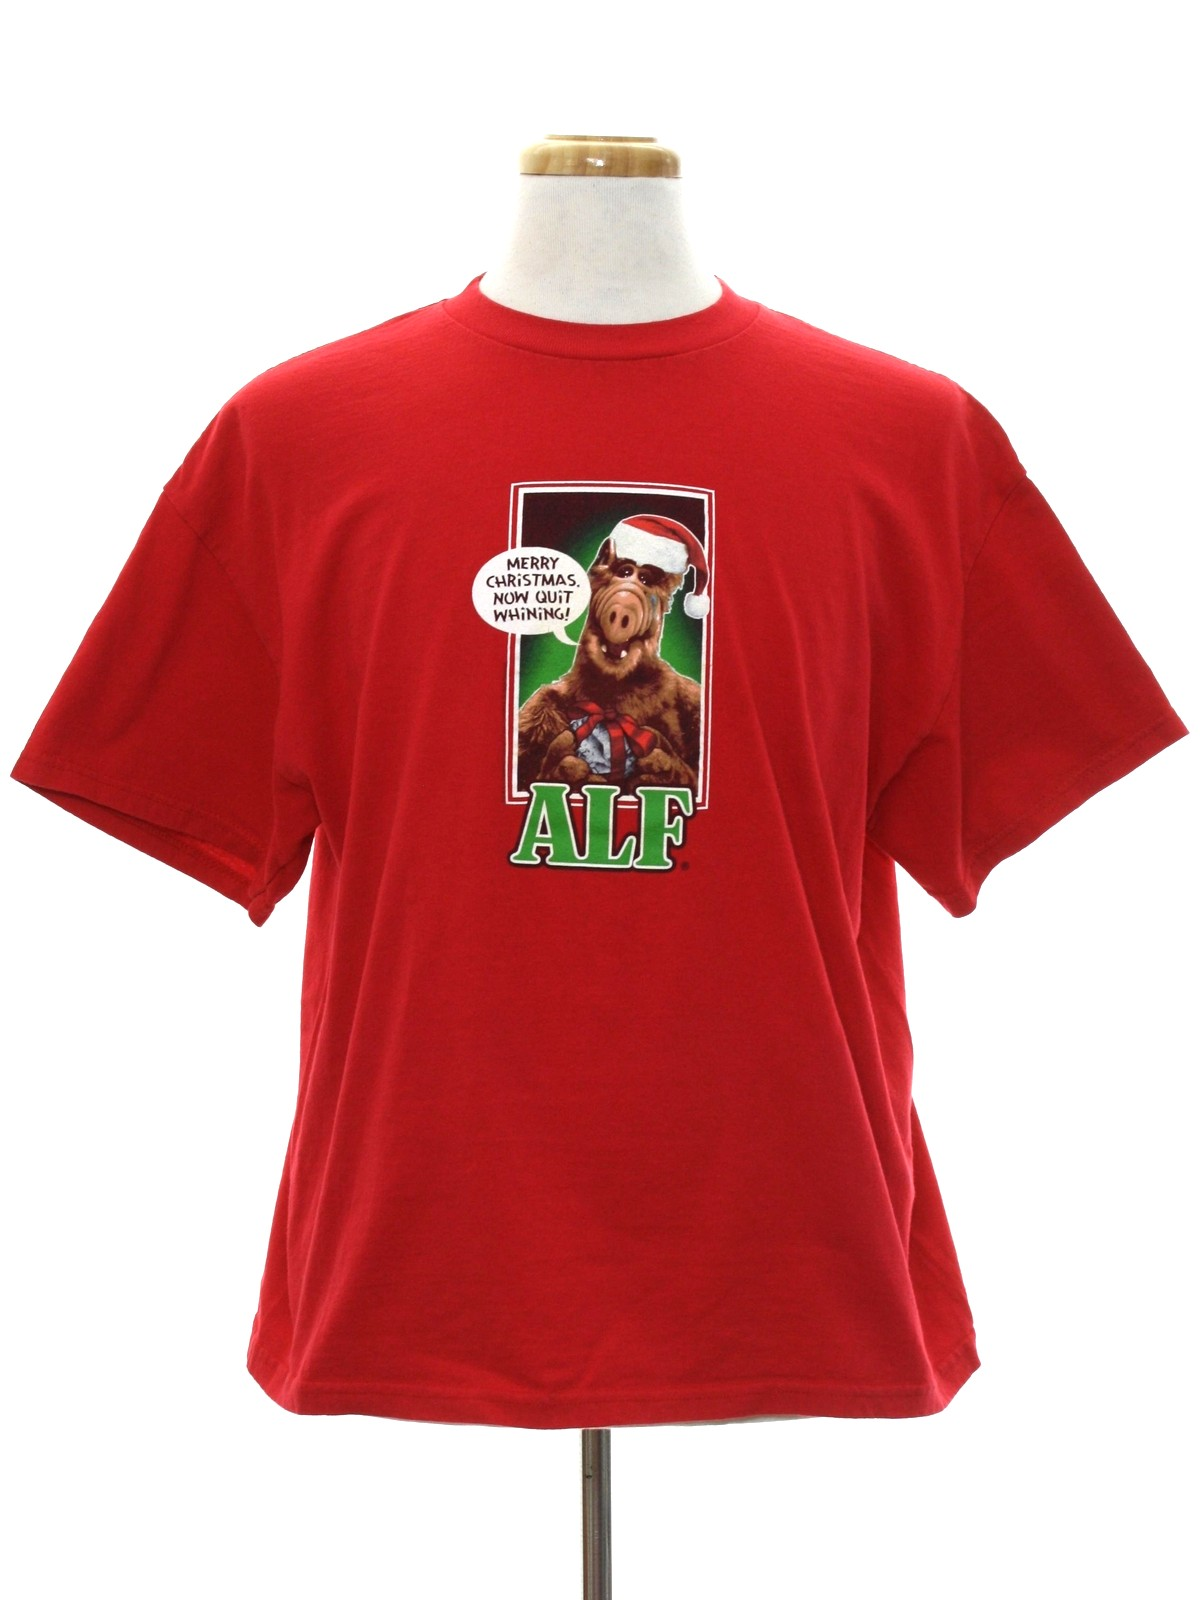 eighties vintage alf ugly christmas t shirt to wear under your sweater vest authentic 80s vintage unisex red background cotton jersey knit with